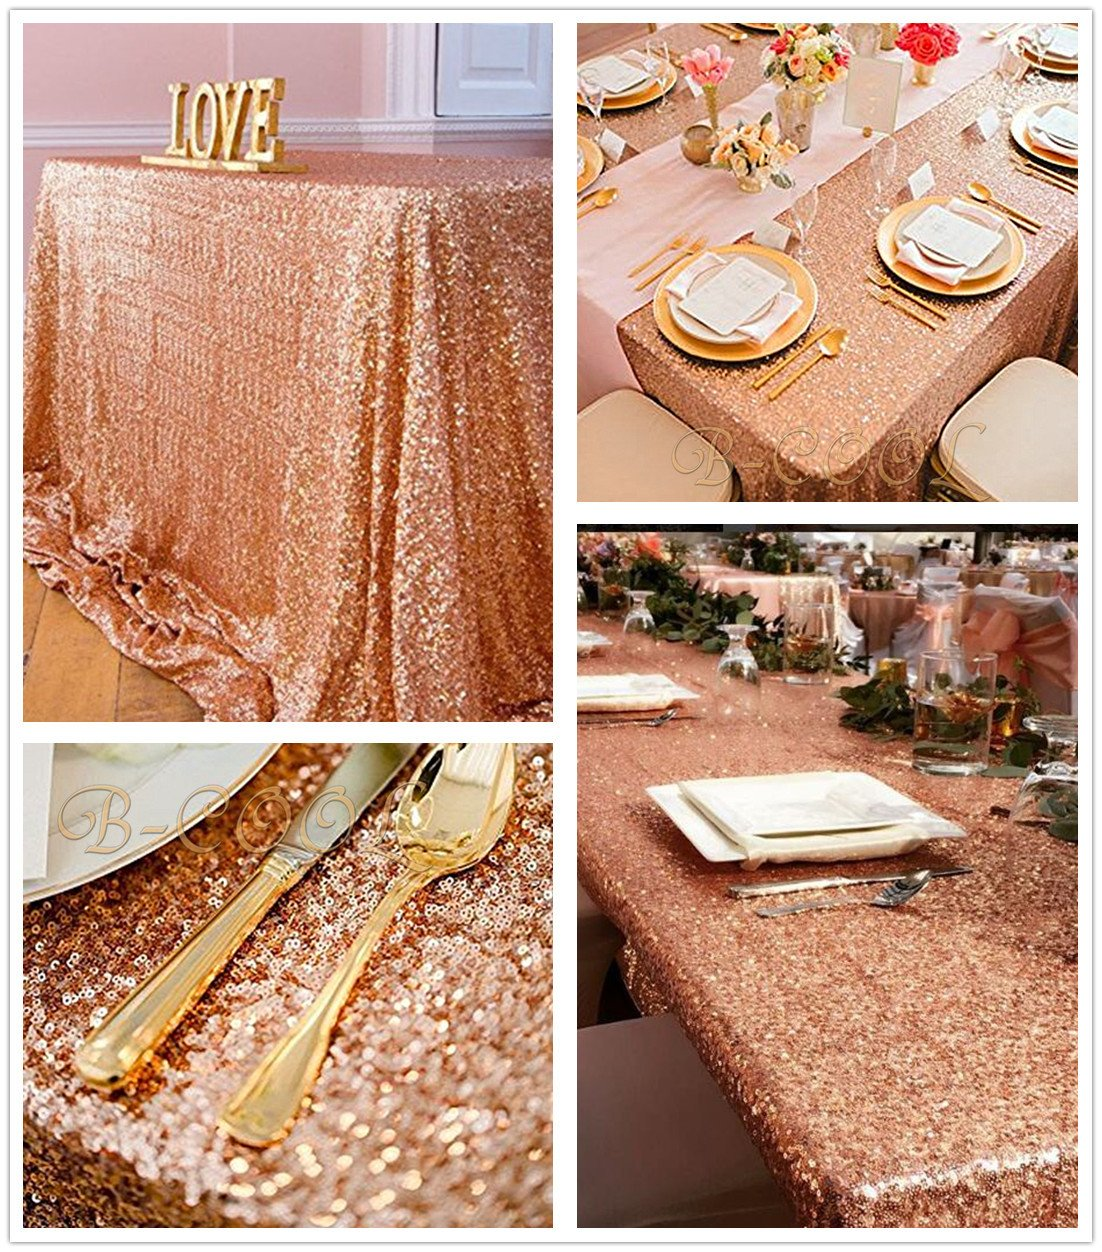 Sparkly Rose Gold Sparkly Sequin Glamorous Tablecloth Backdrop Wedding Party Decoration 90inx156in Garden tablecloth